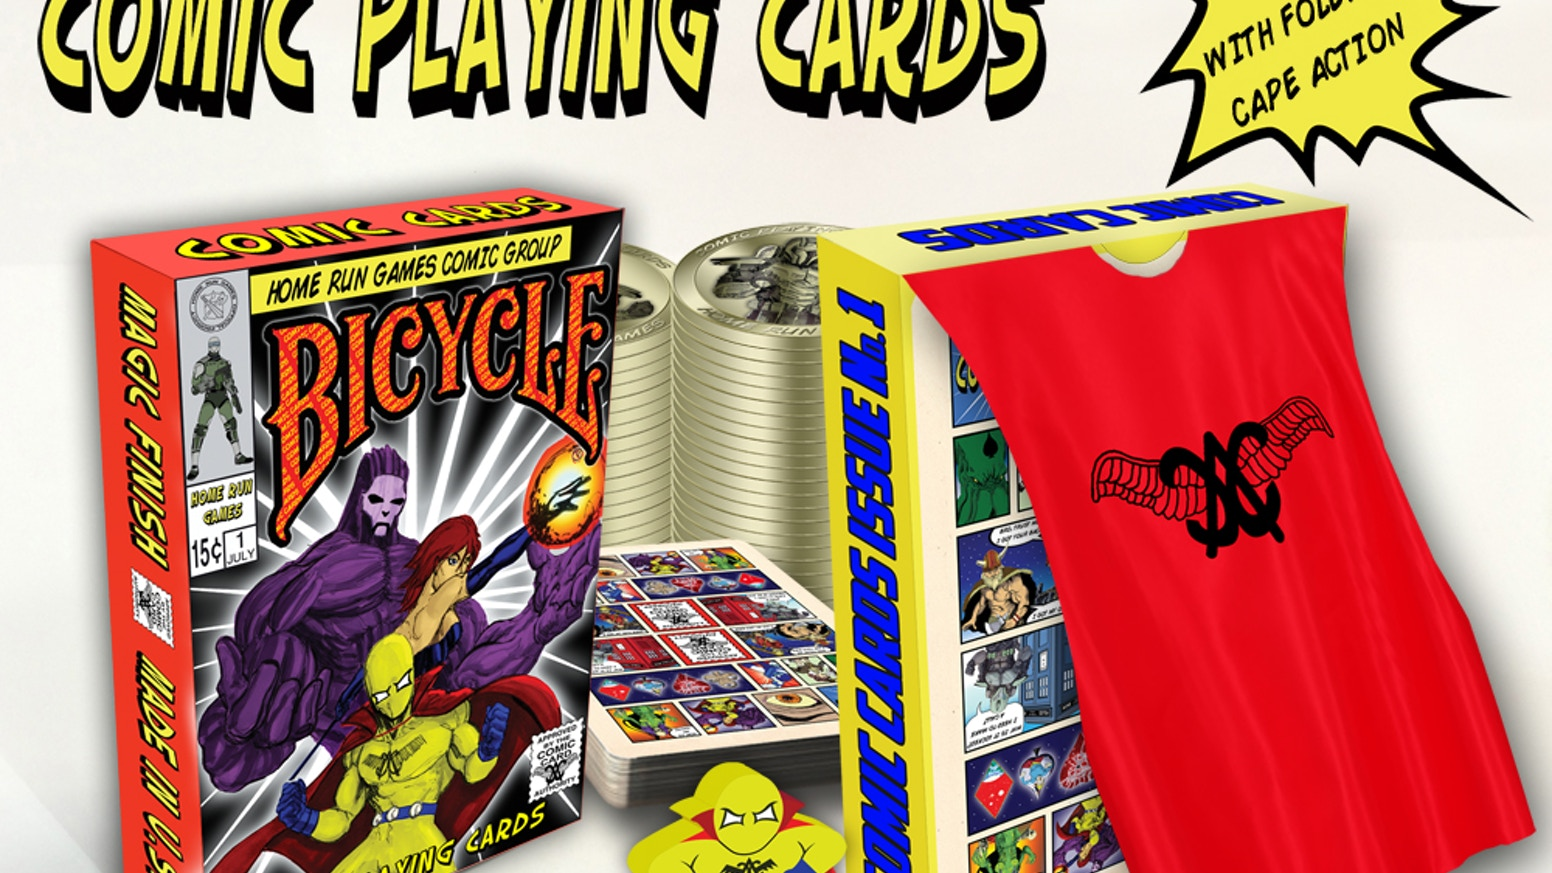 Bicycle Comic Cards! Inspired by Comics, Comic Con, and being a kid.